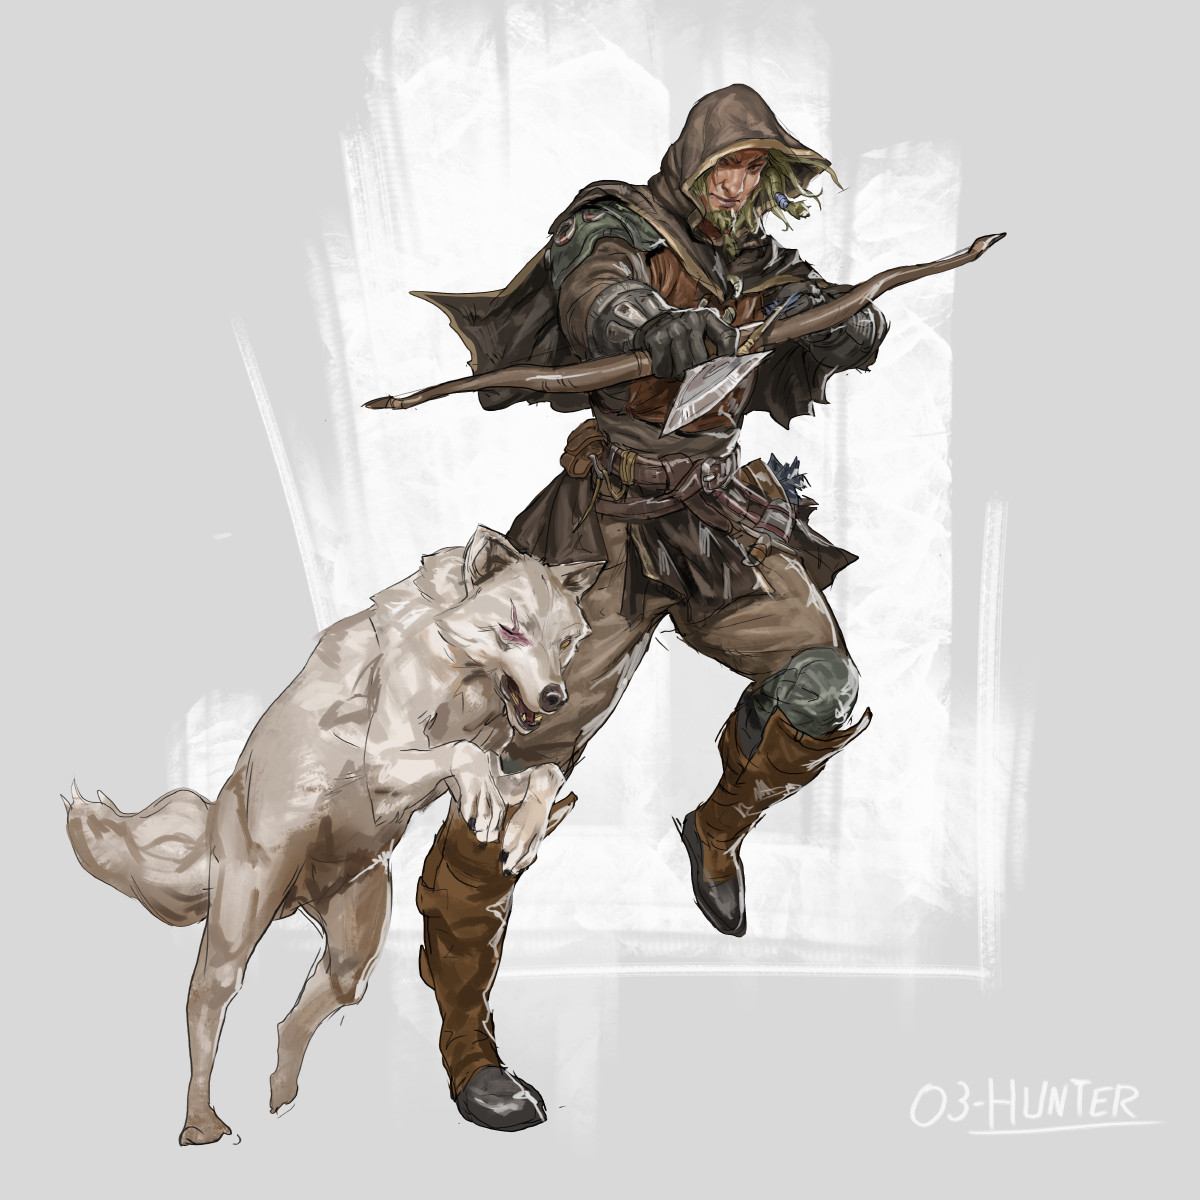 RPG Class day 03: hunter